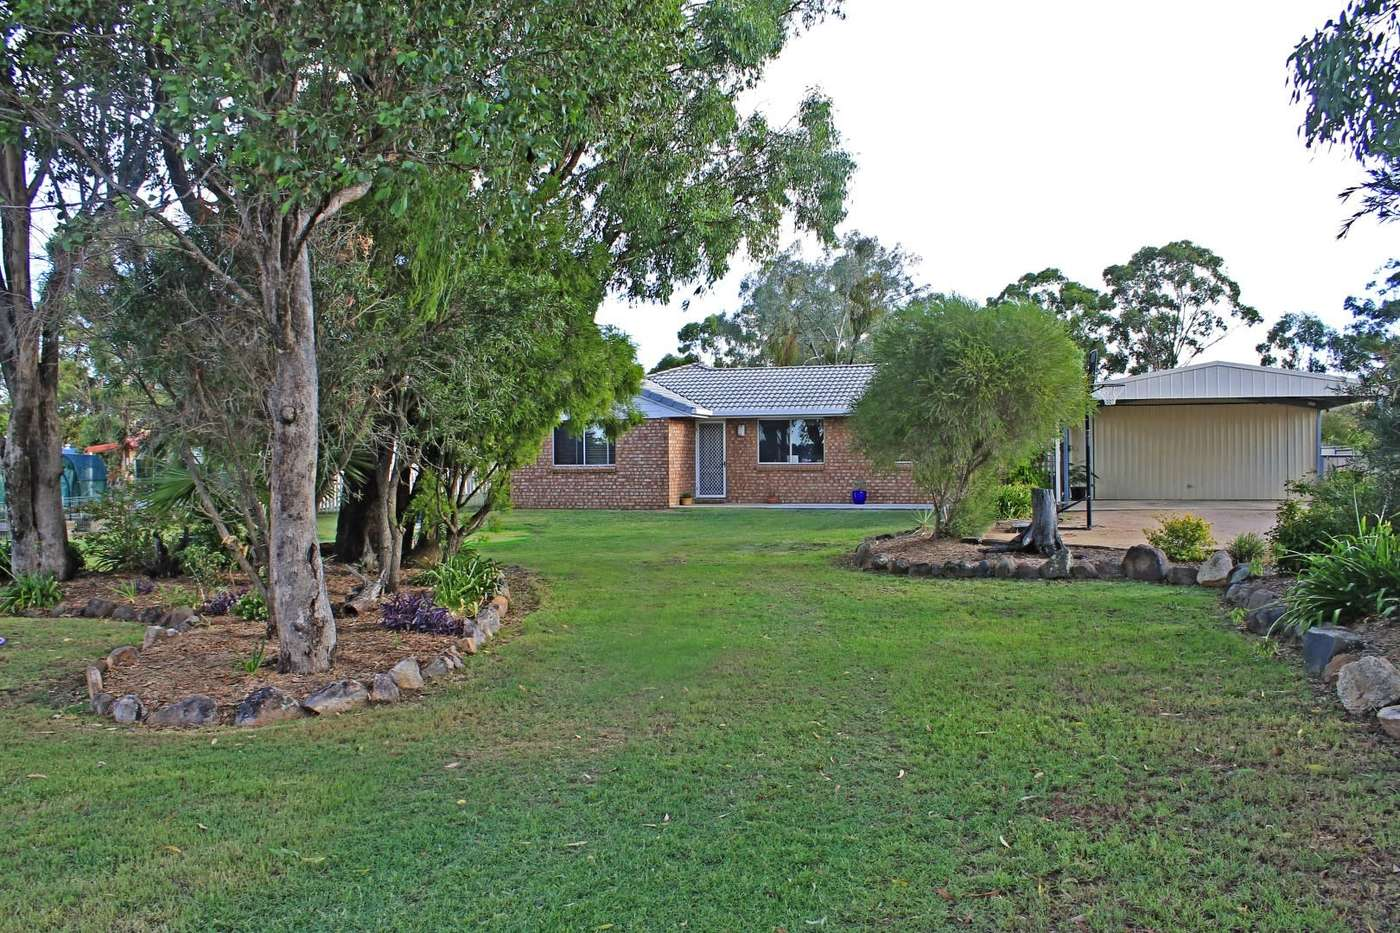 Main view of Homely house listing, 13959 Cunningham Hwy, Warwick, QLD 4370